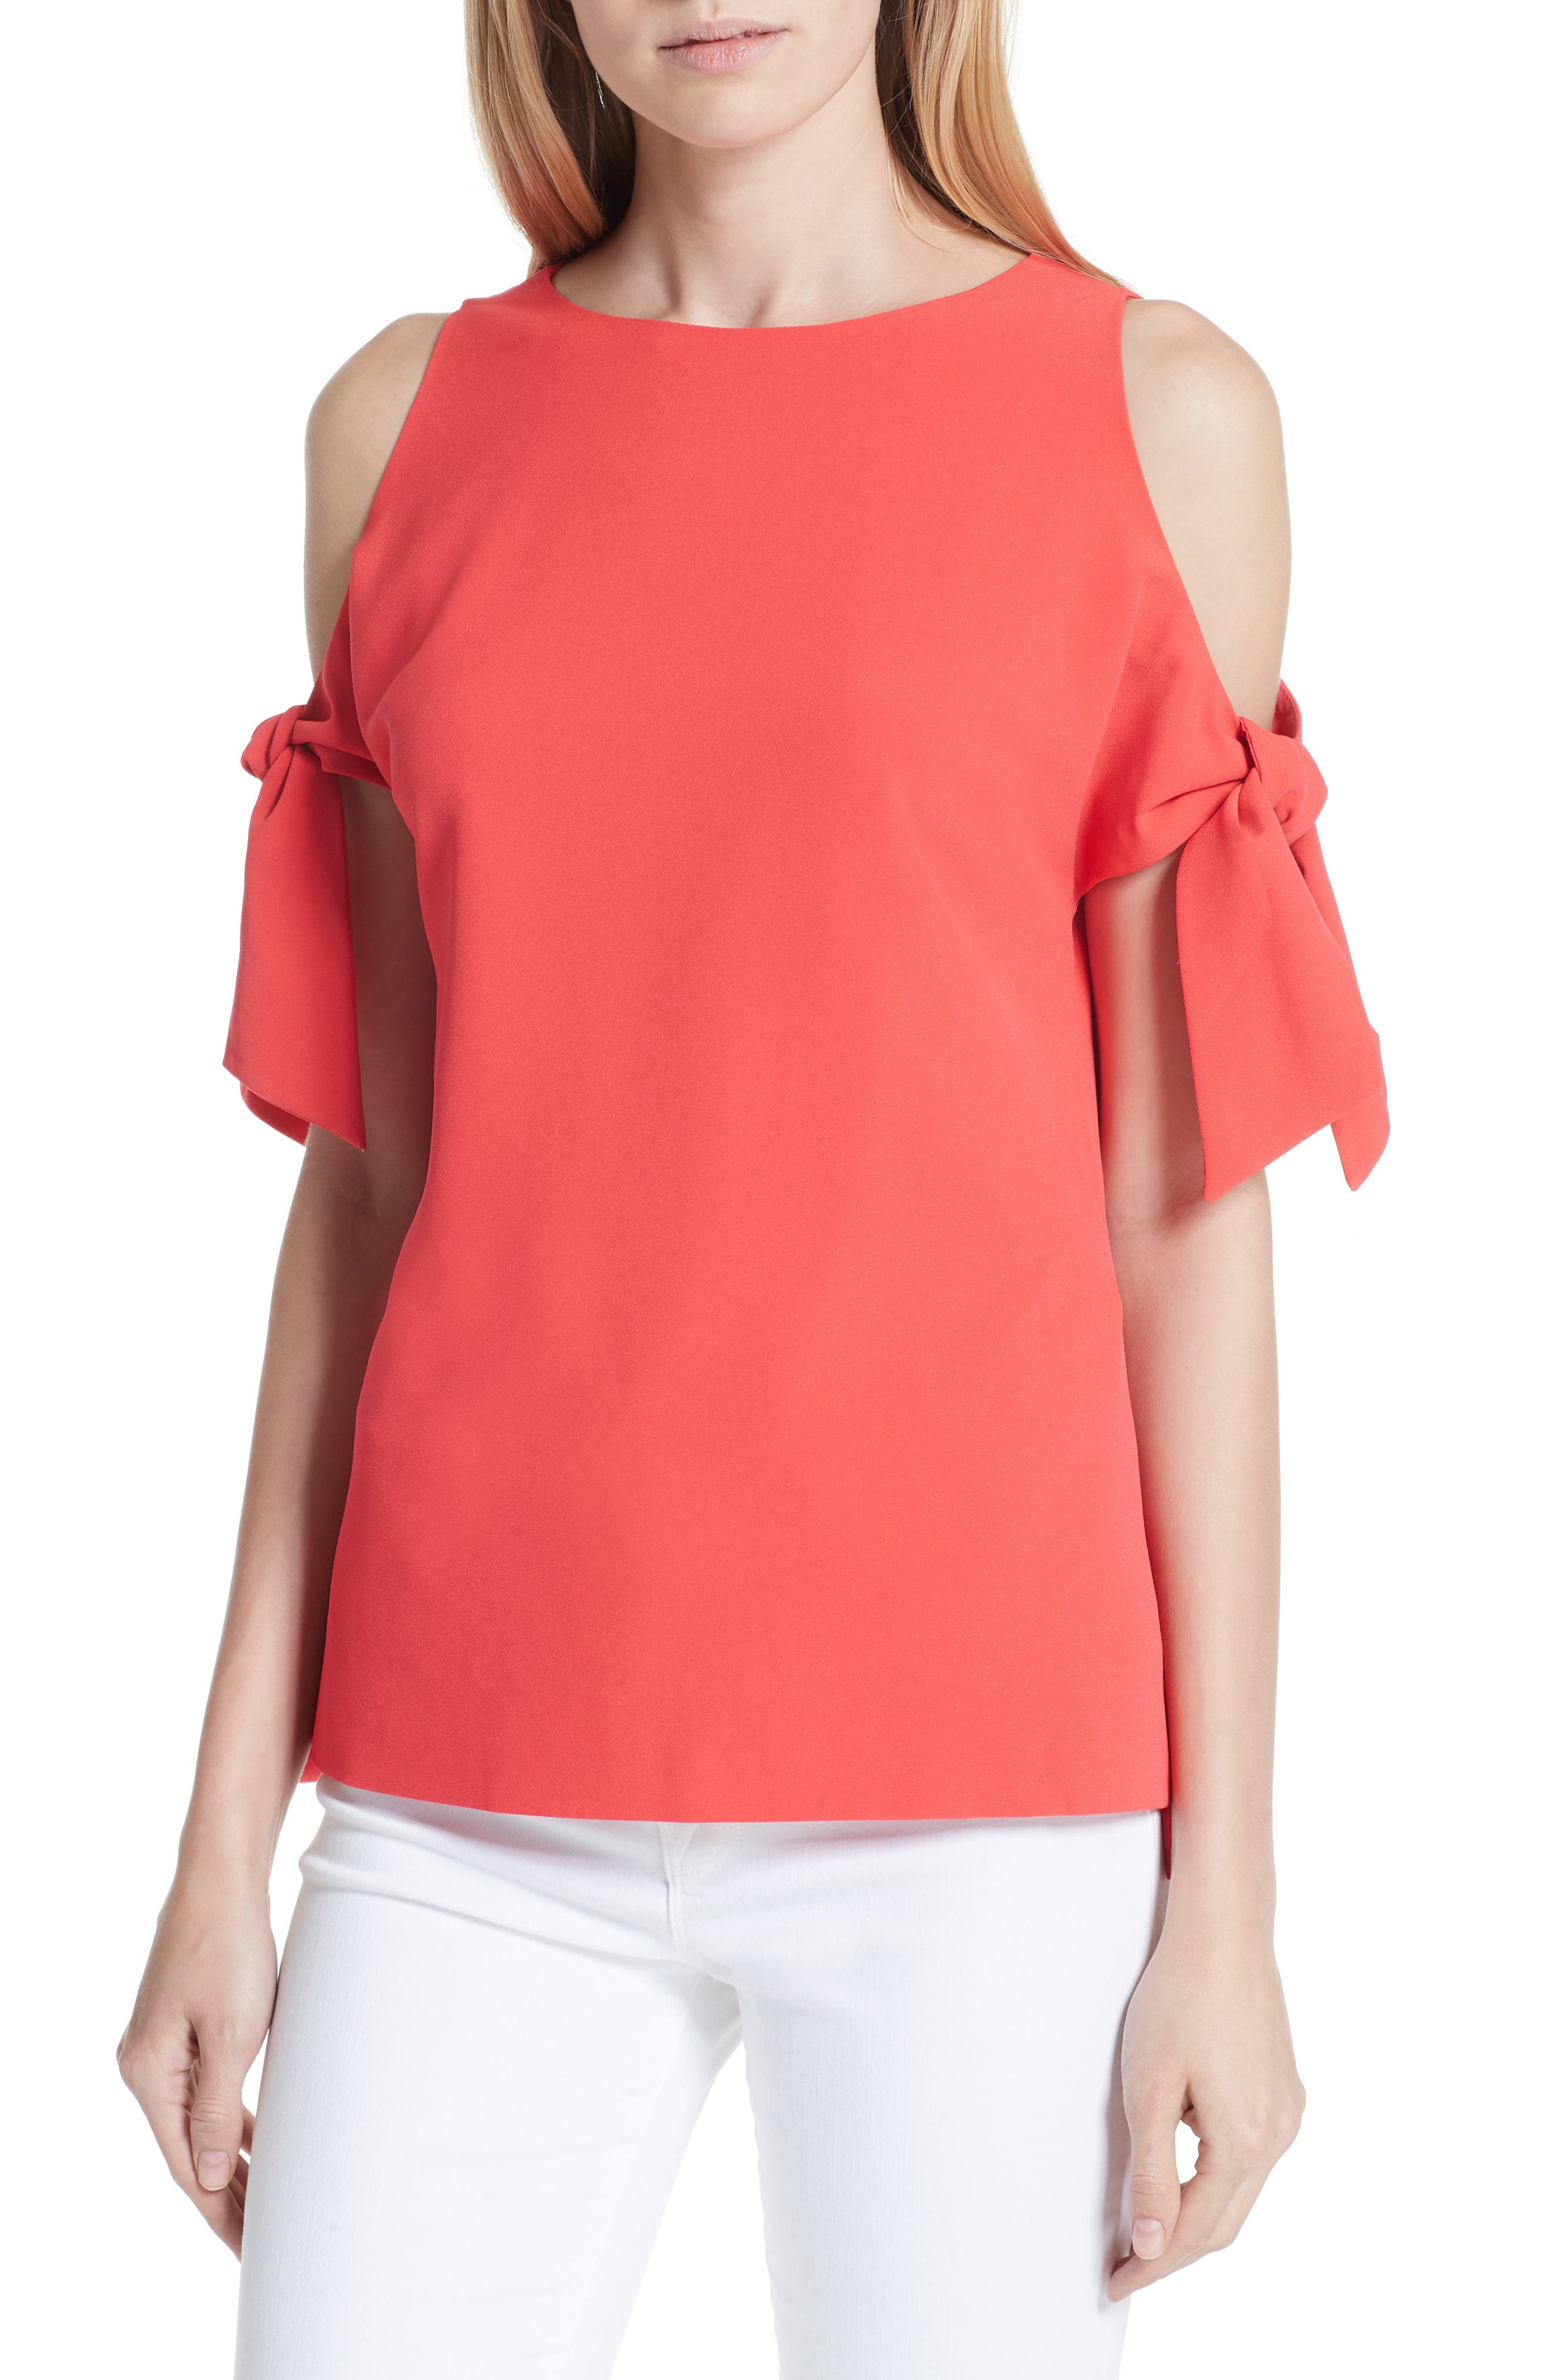 Yaele Cold Shoulder Top,                             Main thumbnail 1, color,                             BRIGHT RED